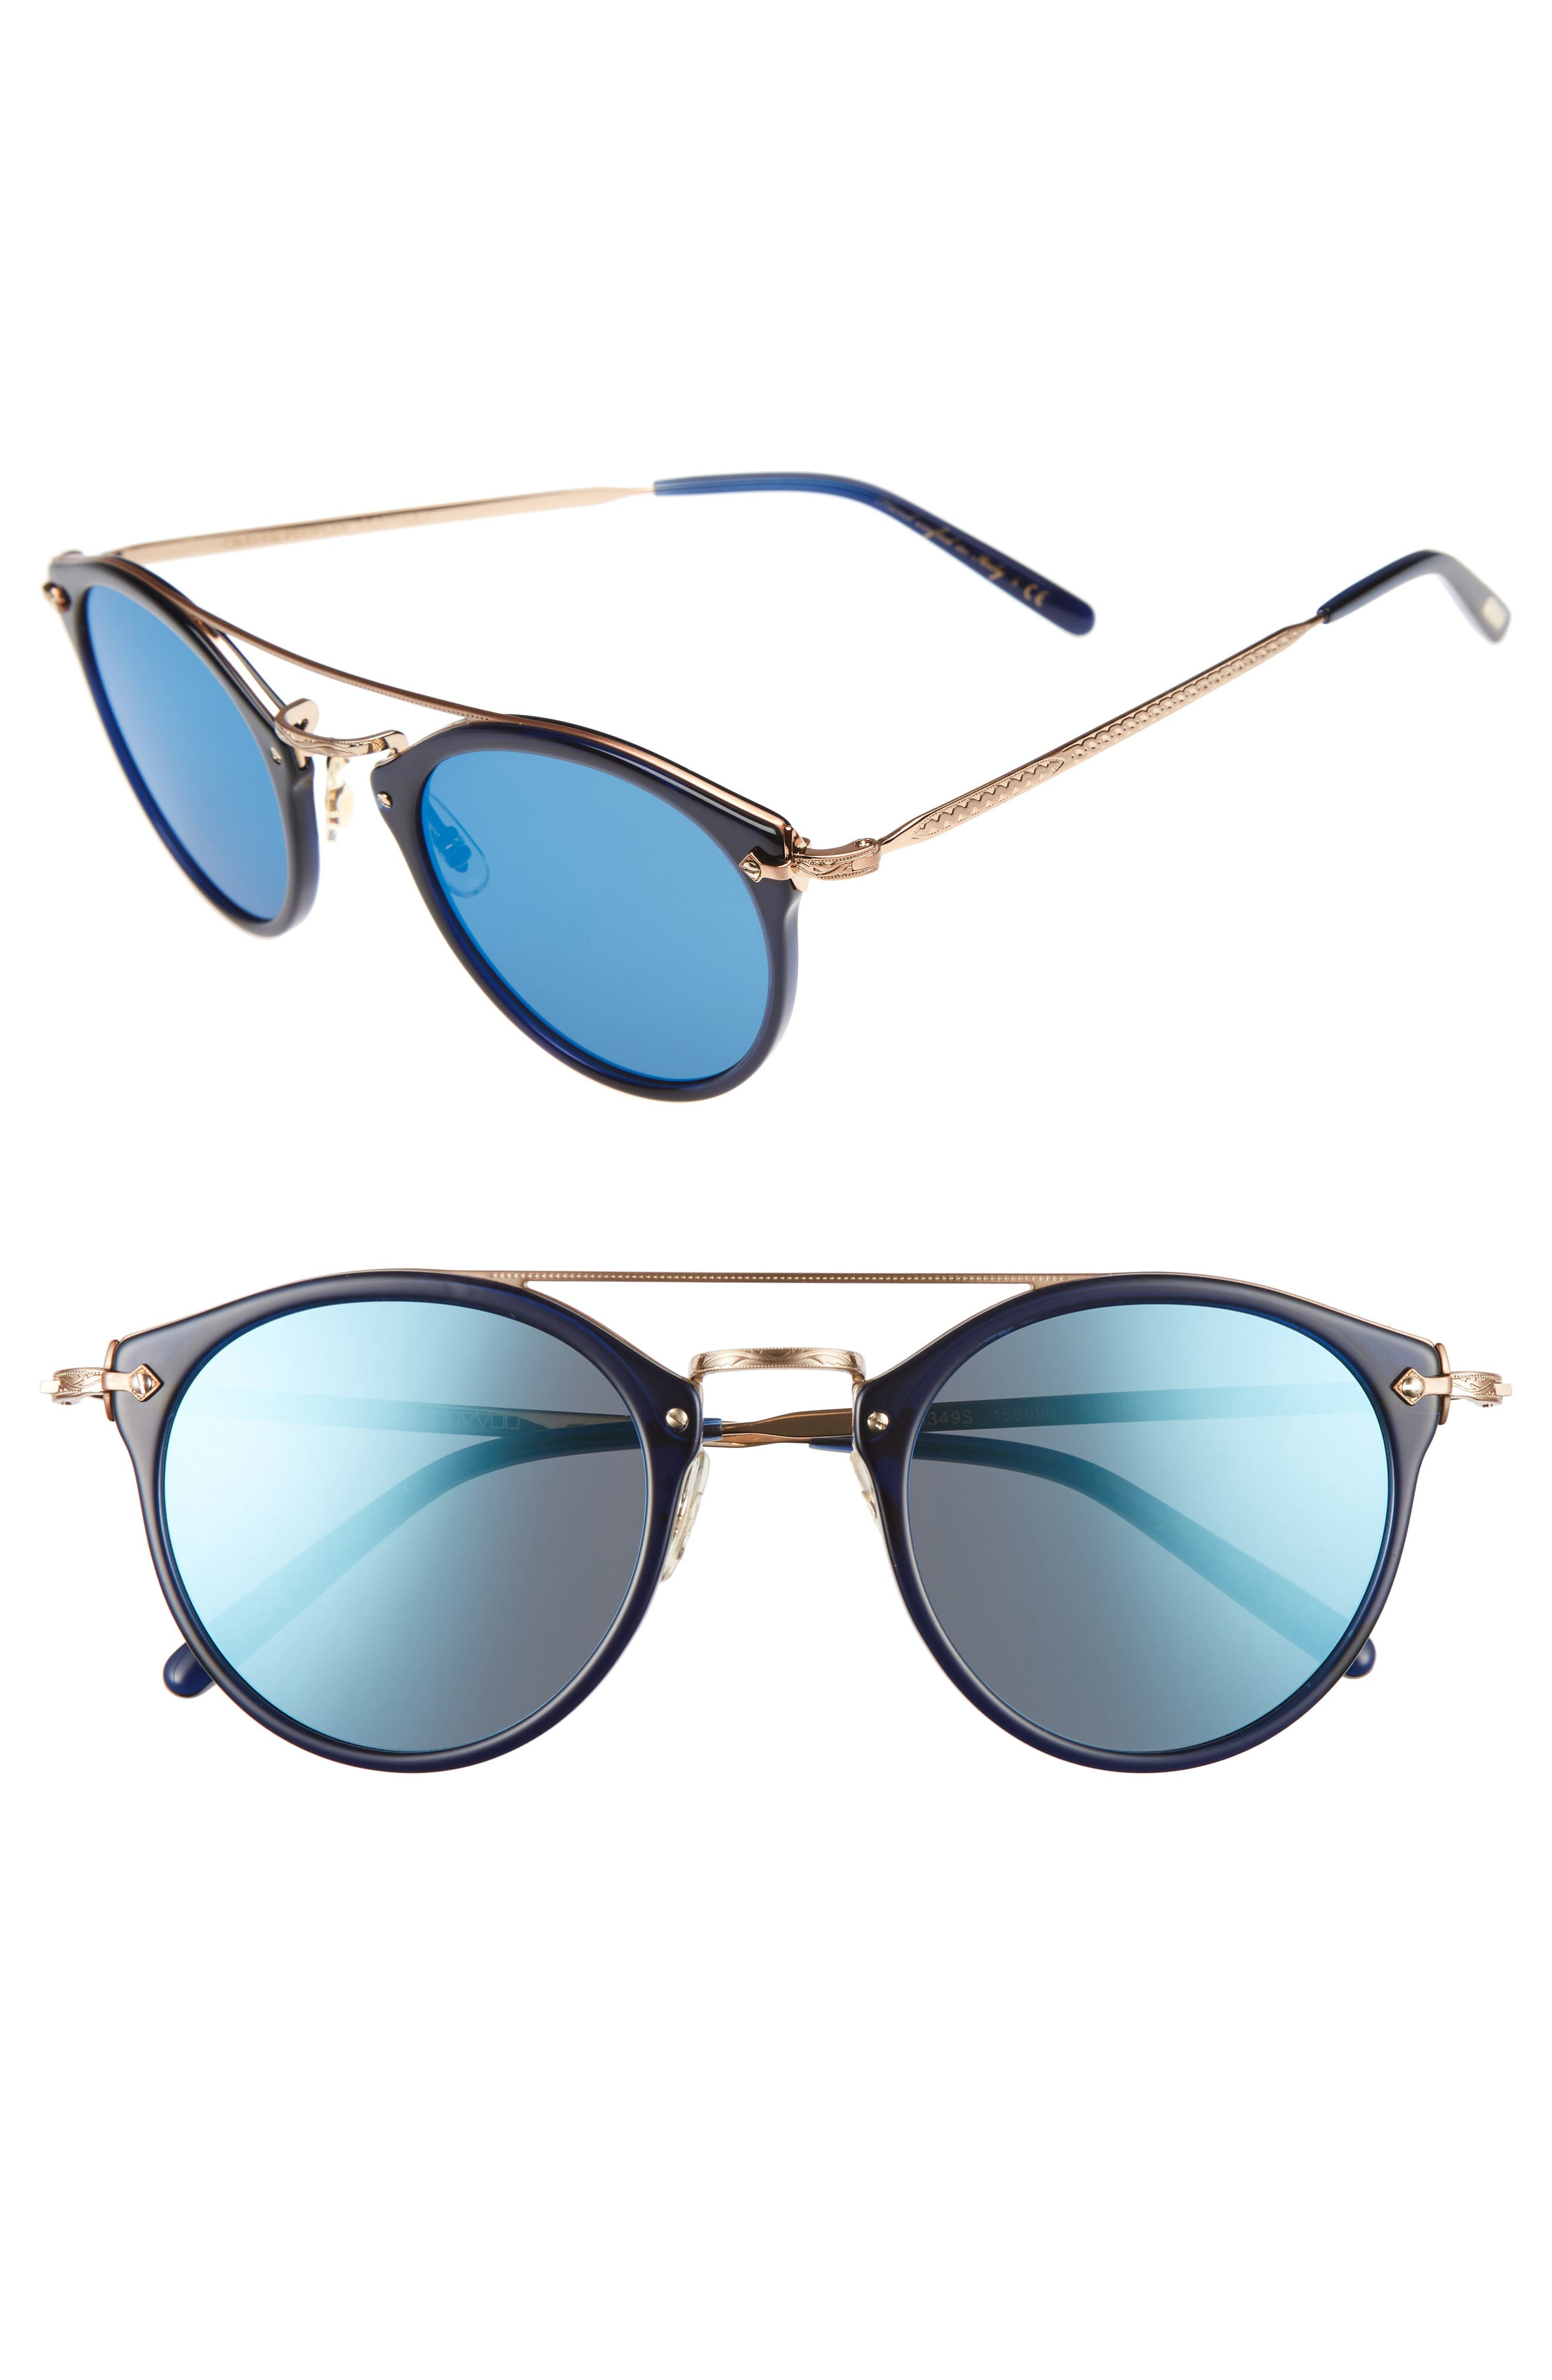 Oliver Peoples Remick 50mm Brow Bar Sunglasses